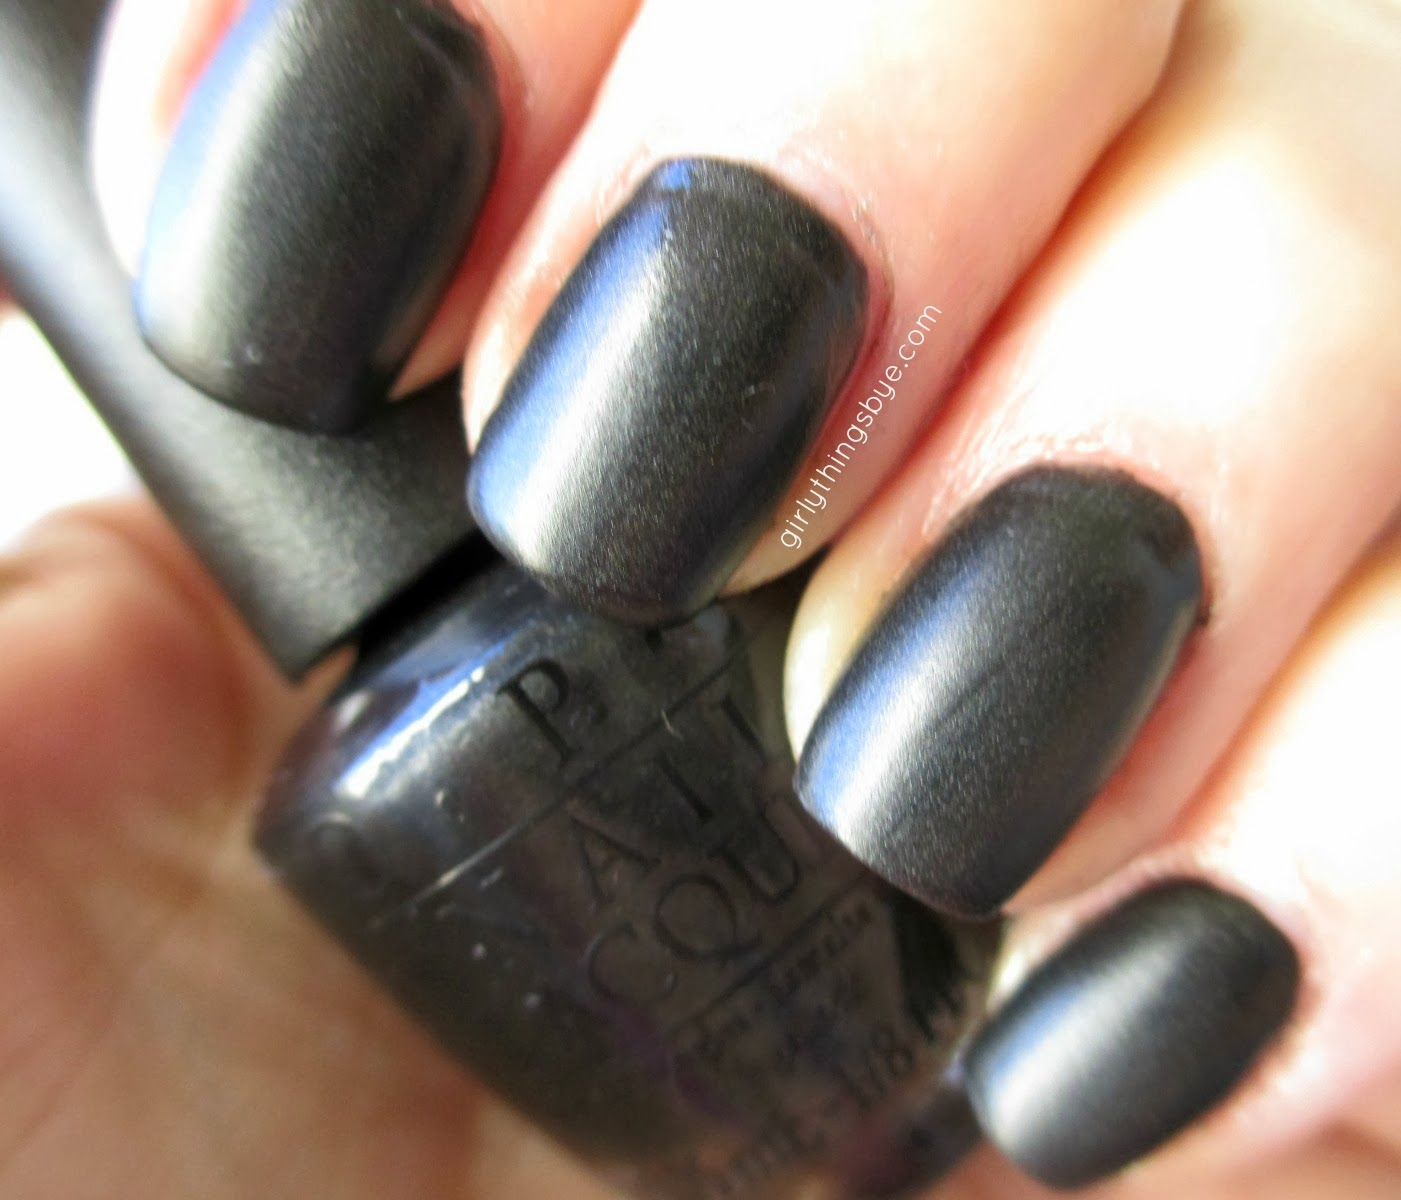 Gwen Stefani for OPI, 4 In The Morning #nailpolish